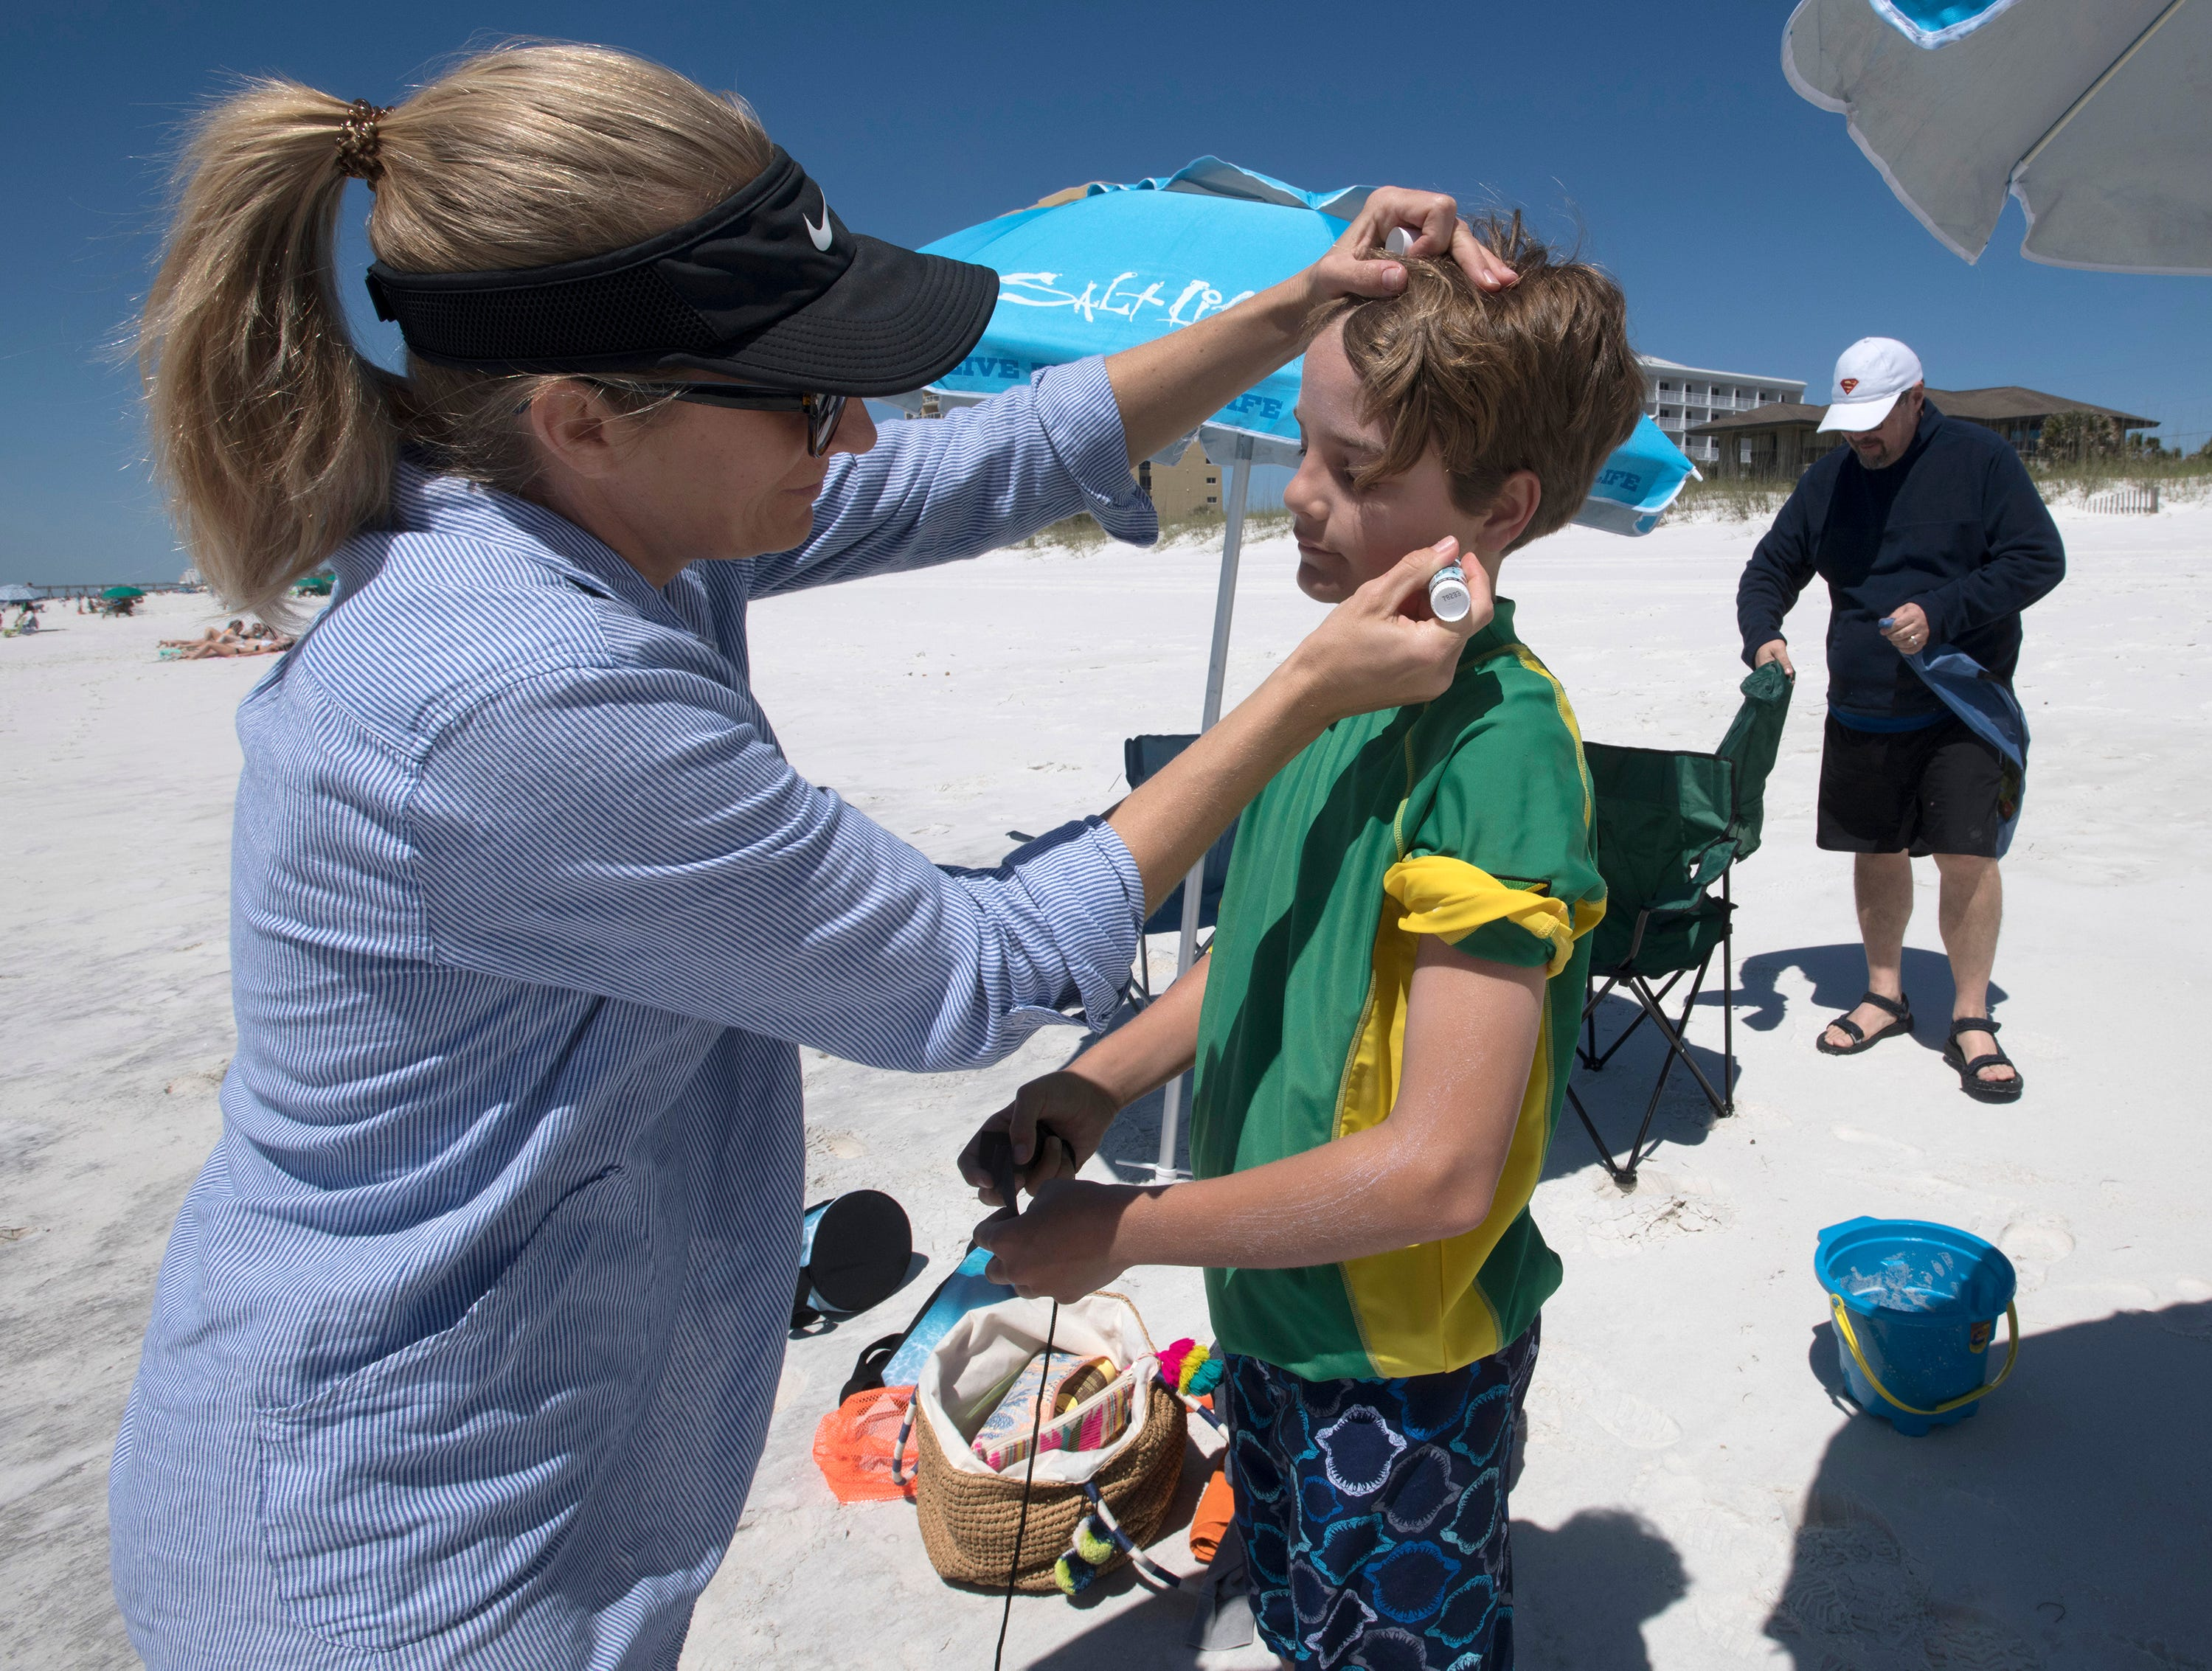 New Orleans resident, Mimi Ryan, protects her son, James, from the suns rays while visiting Pensacola Beach for spring break on Monday, April 15, 2019.